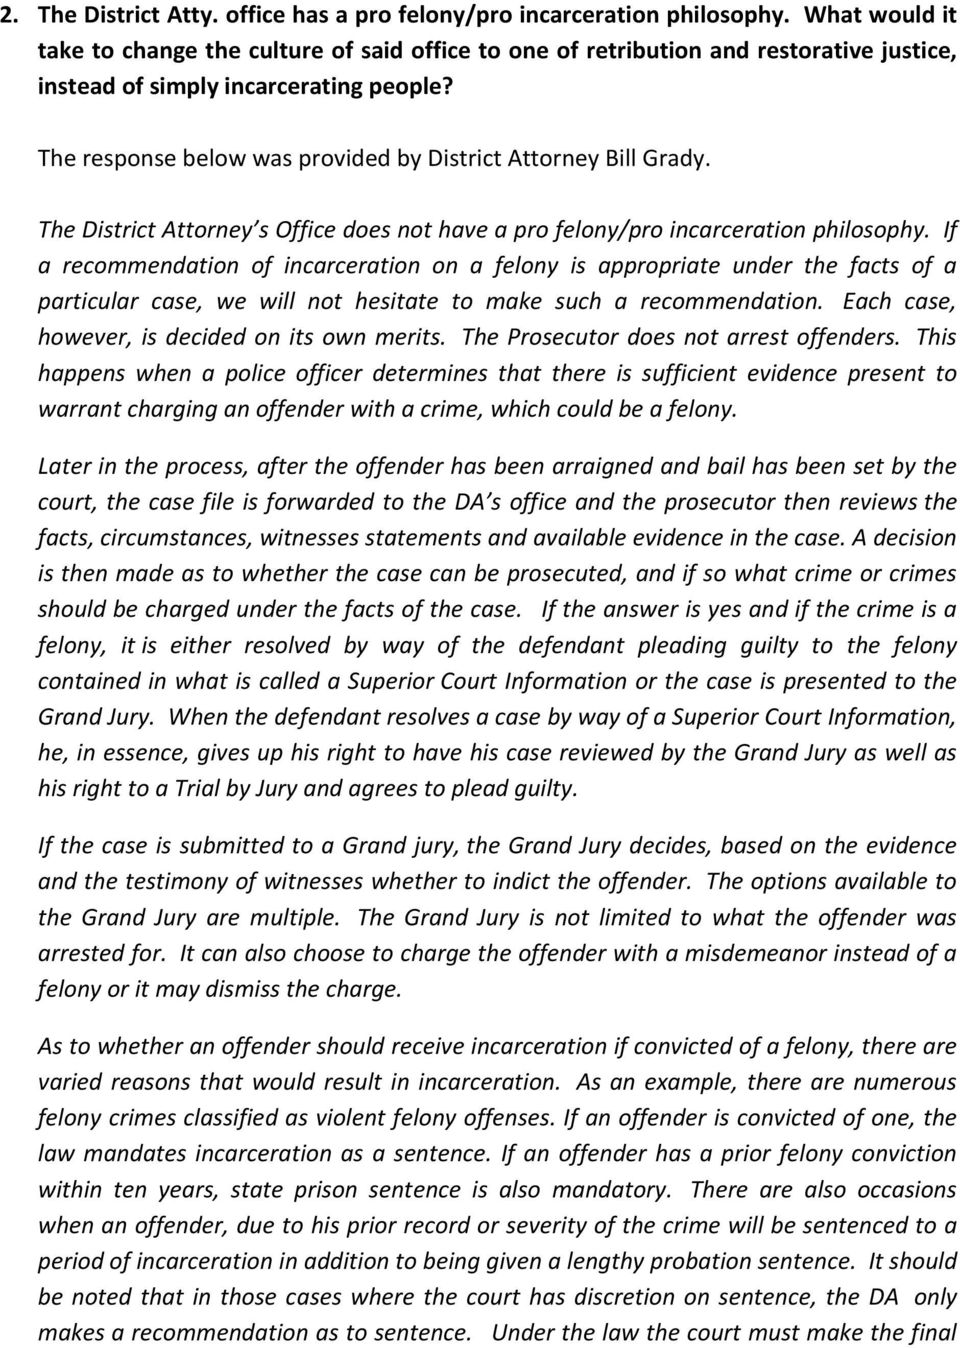 The response below was provided by District Attorney Bill Grady. The District Attorney s Office does not have a pro felony/pro incarceration philosophy.